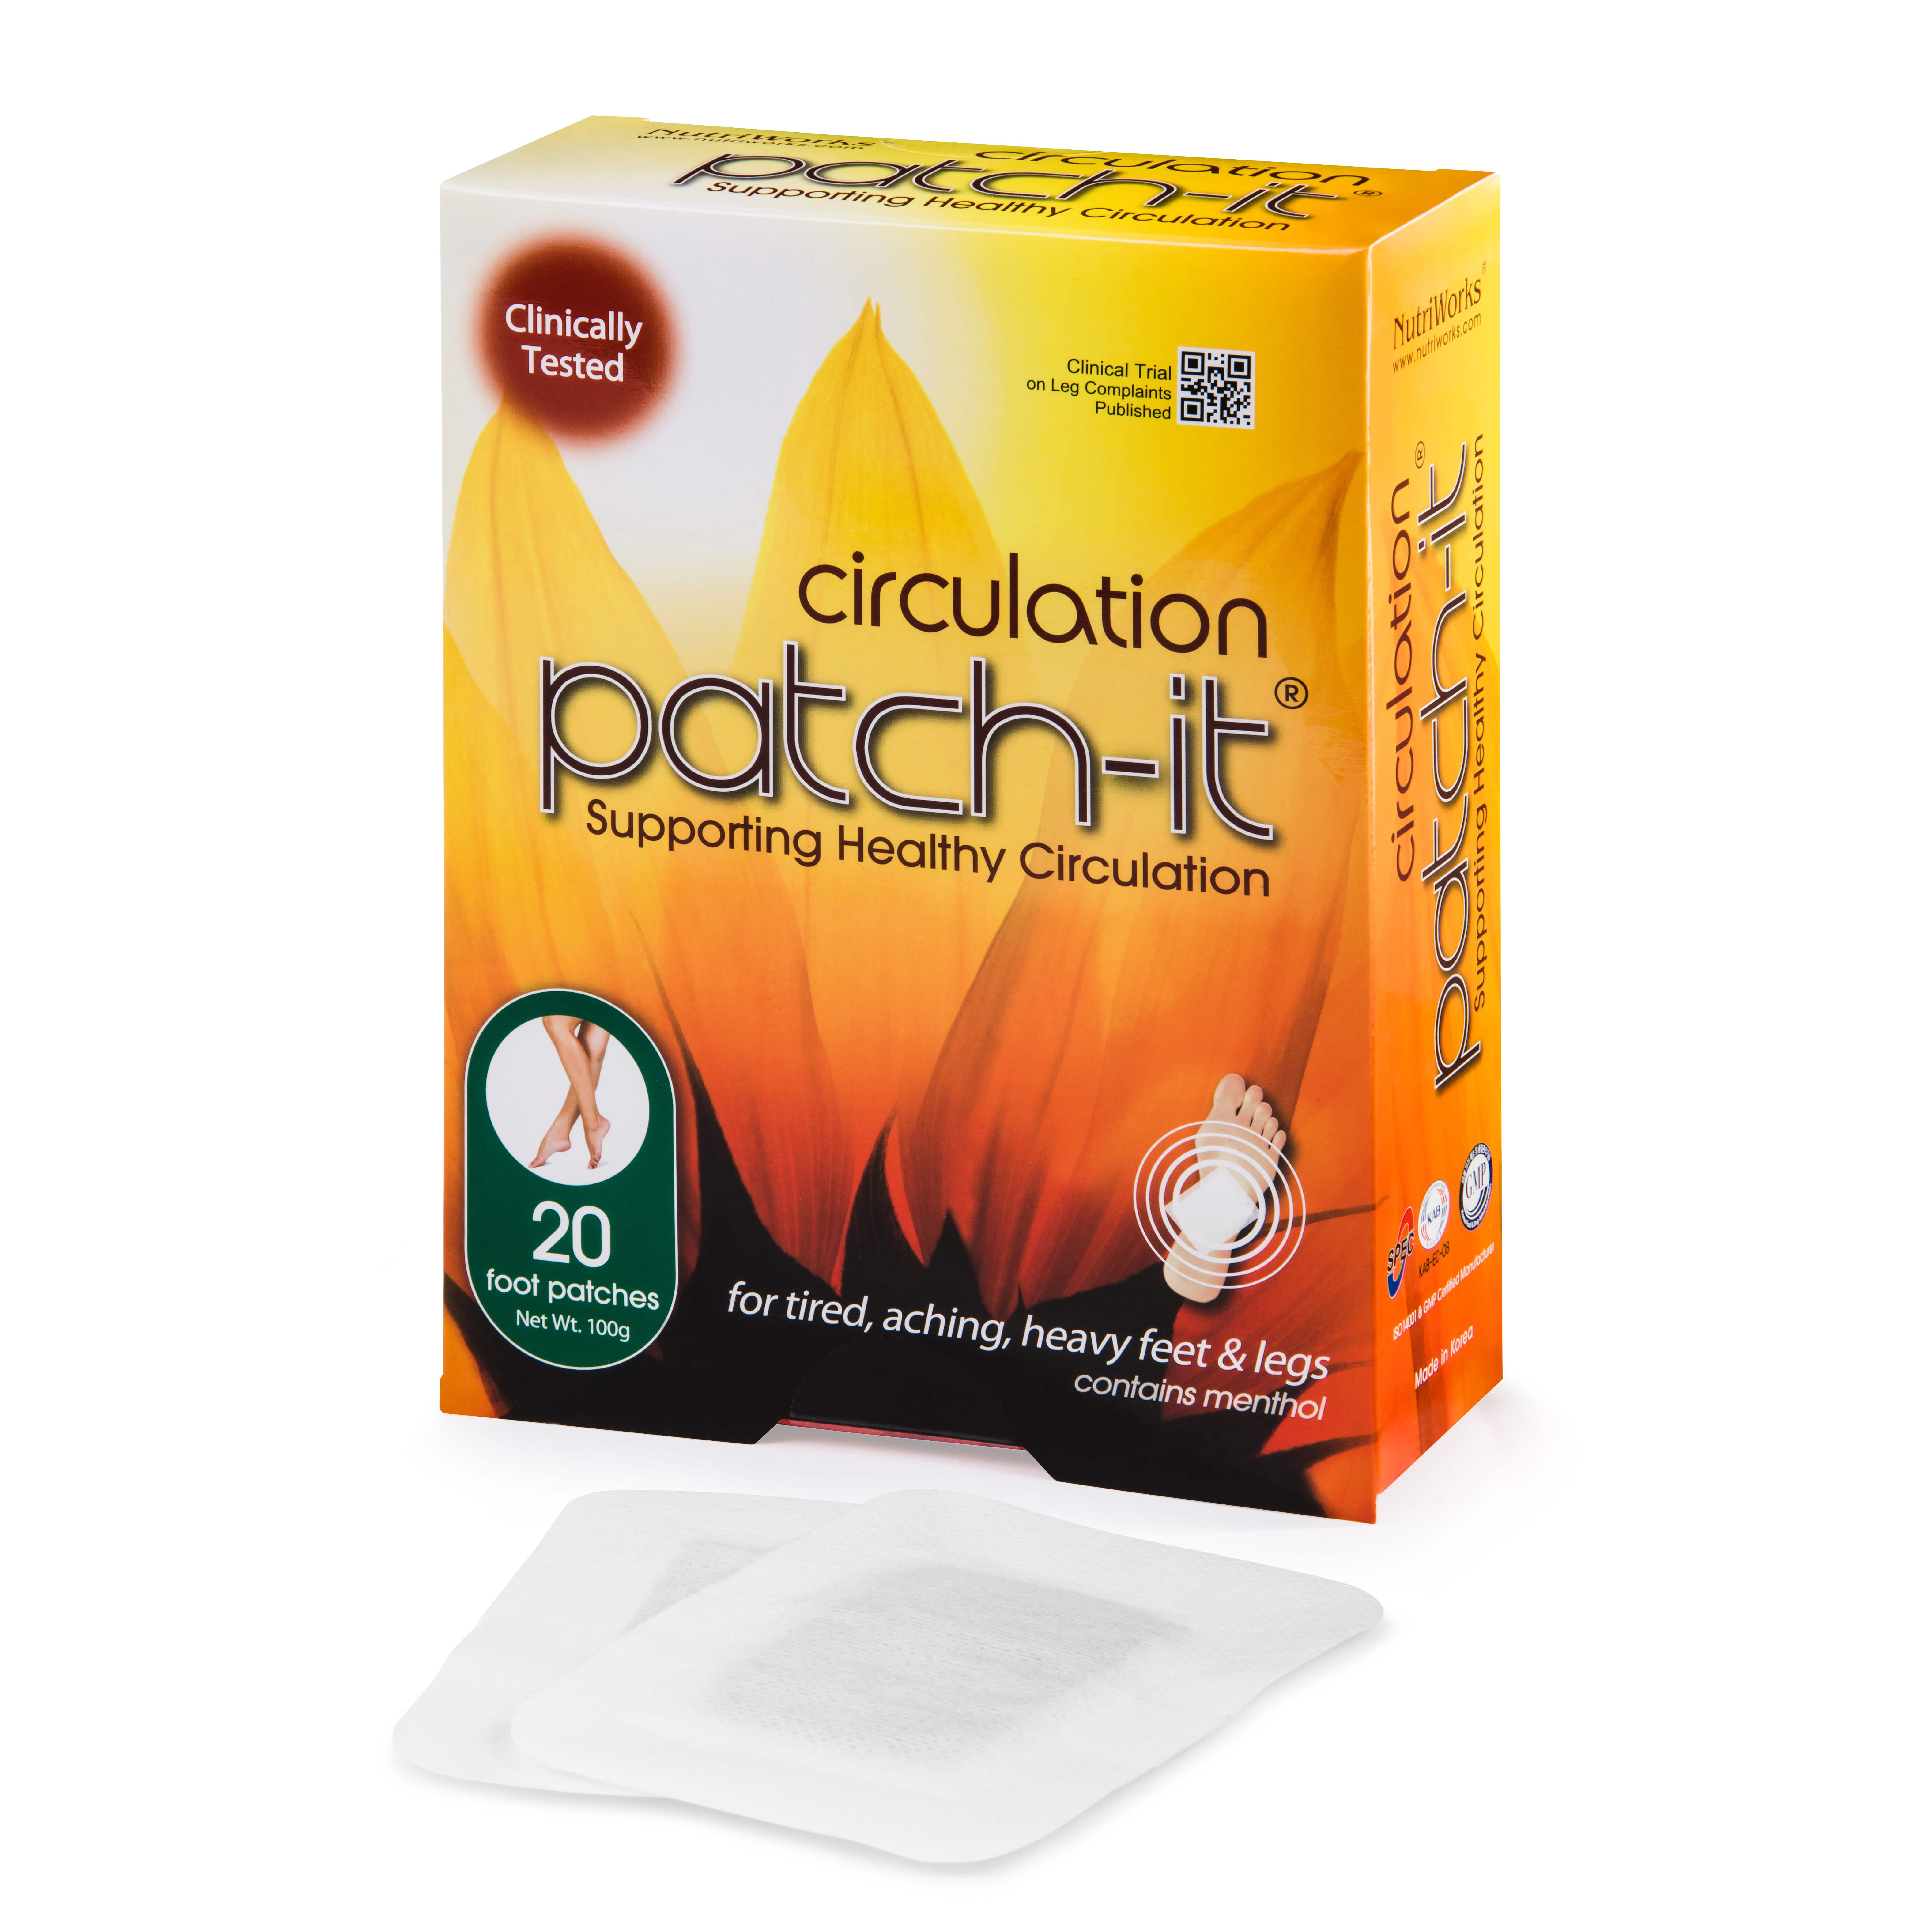 Circulation Patch-it- 20 Patches